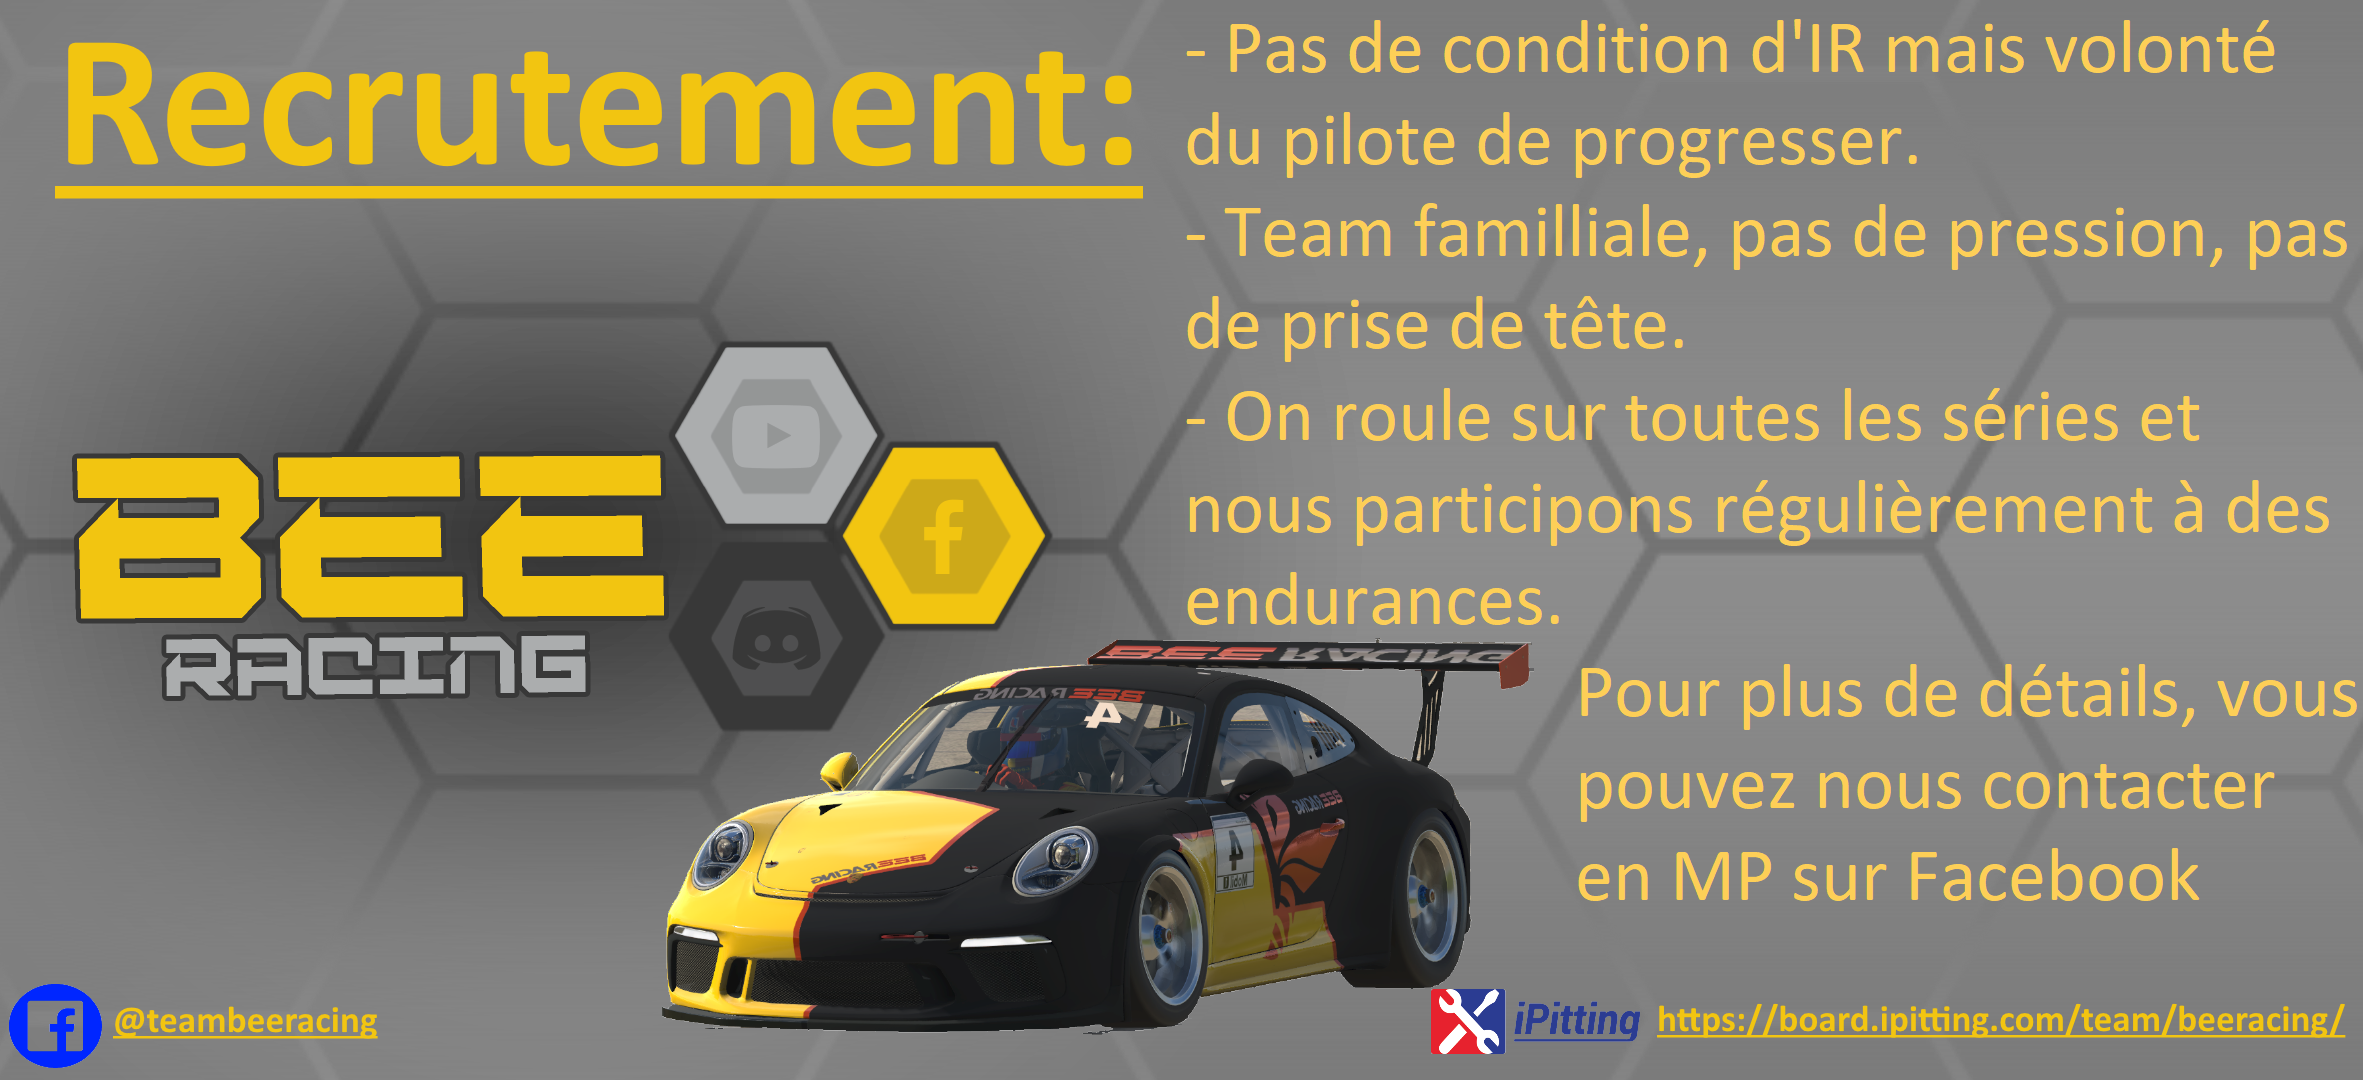 [Image: 1587138452-recrutement.png]